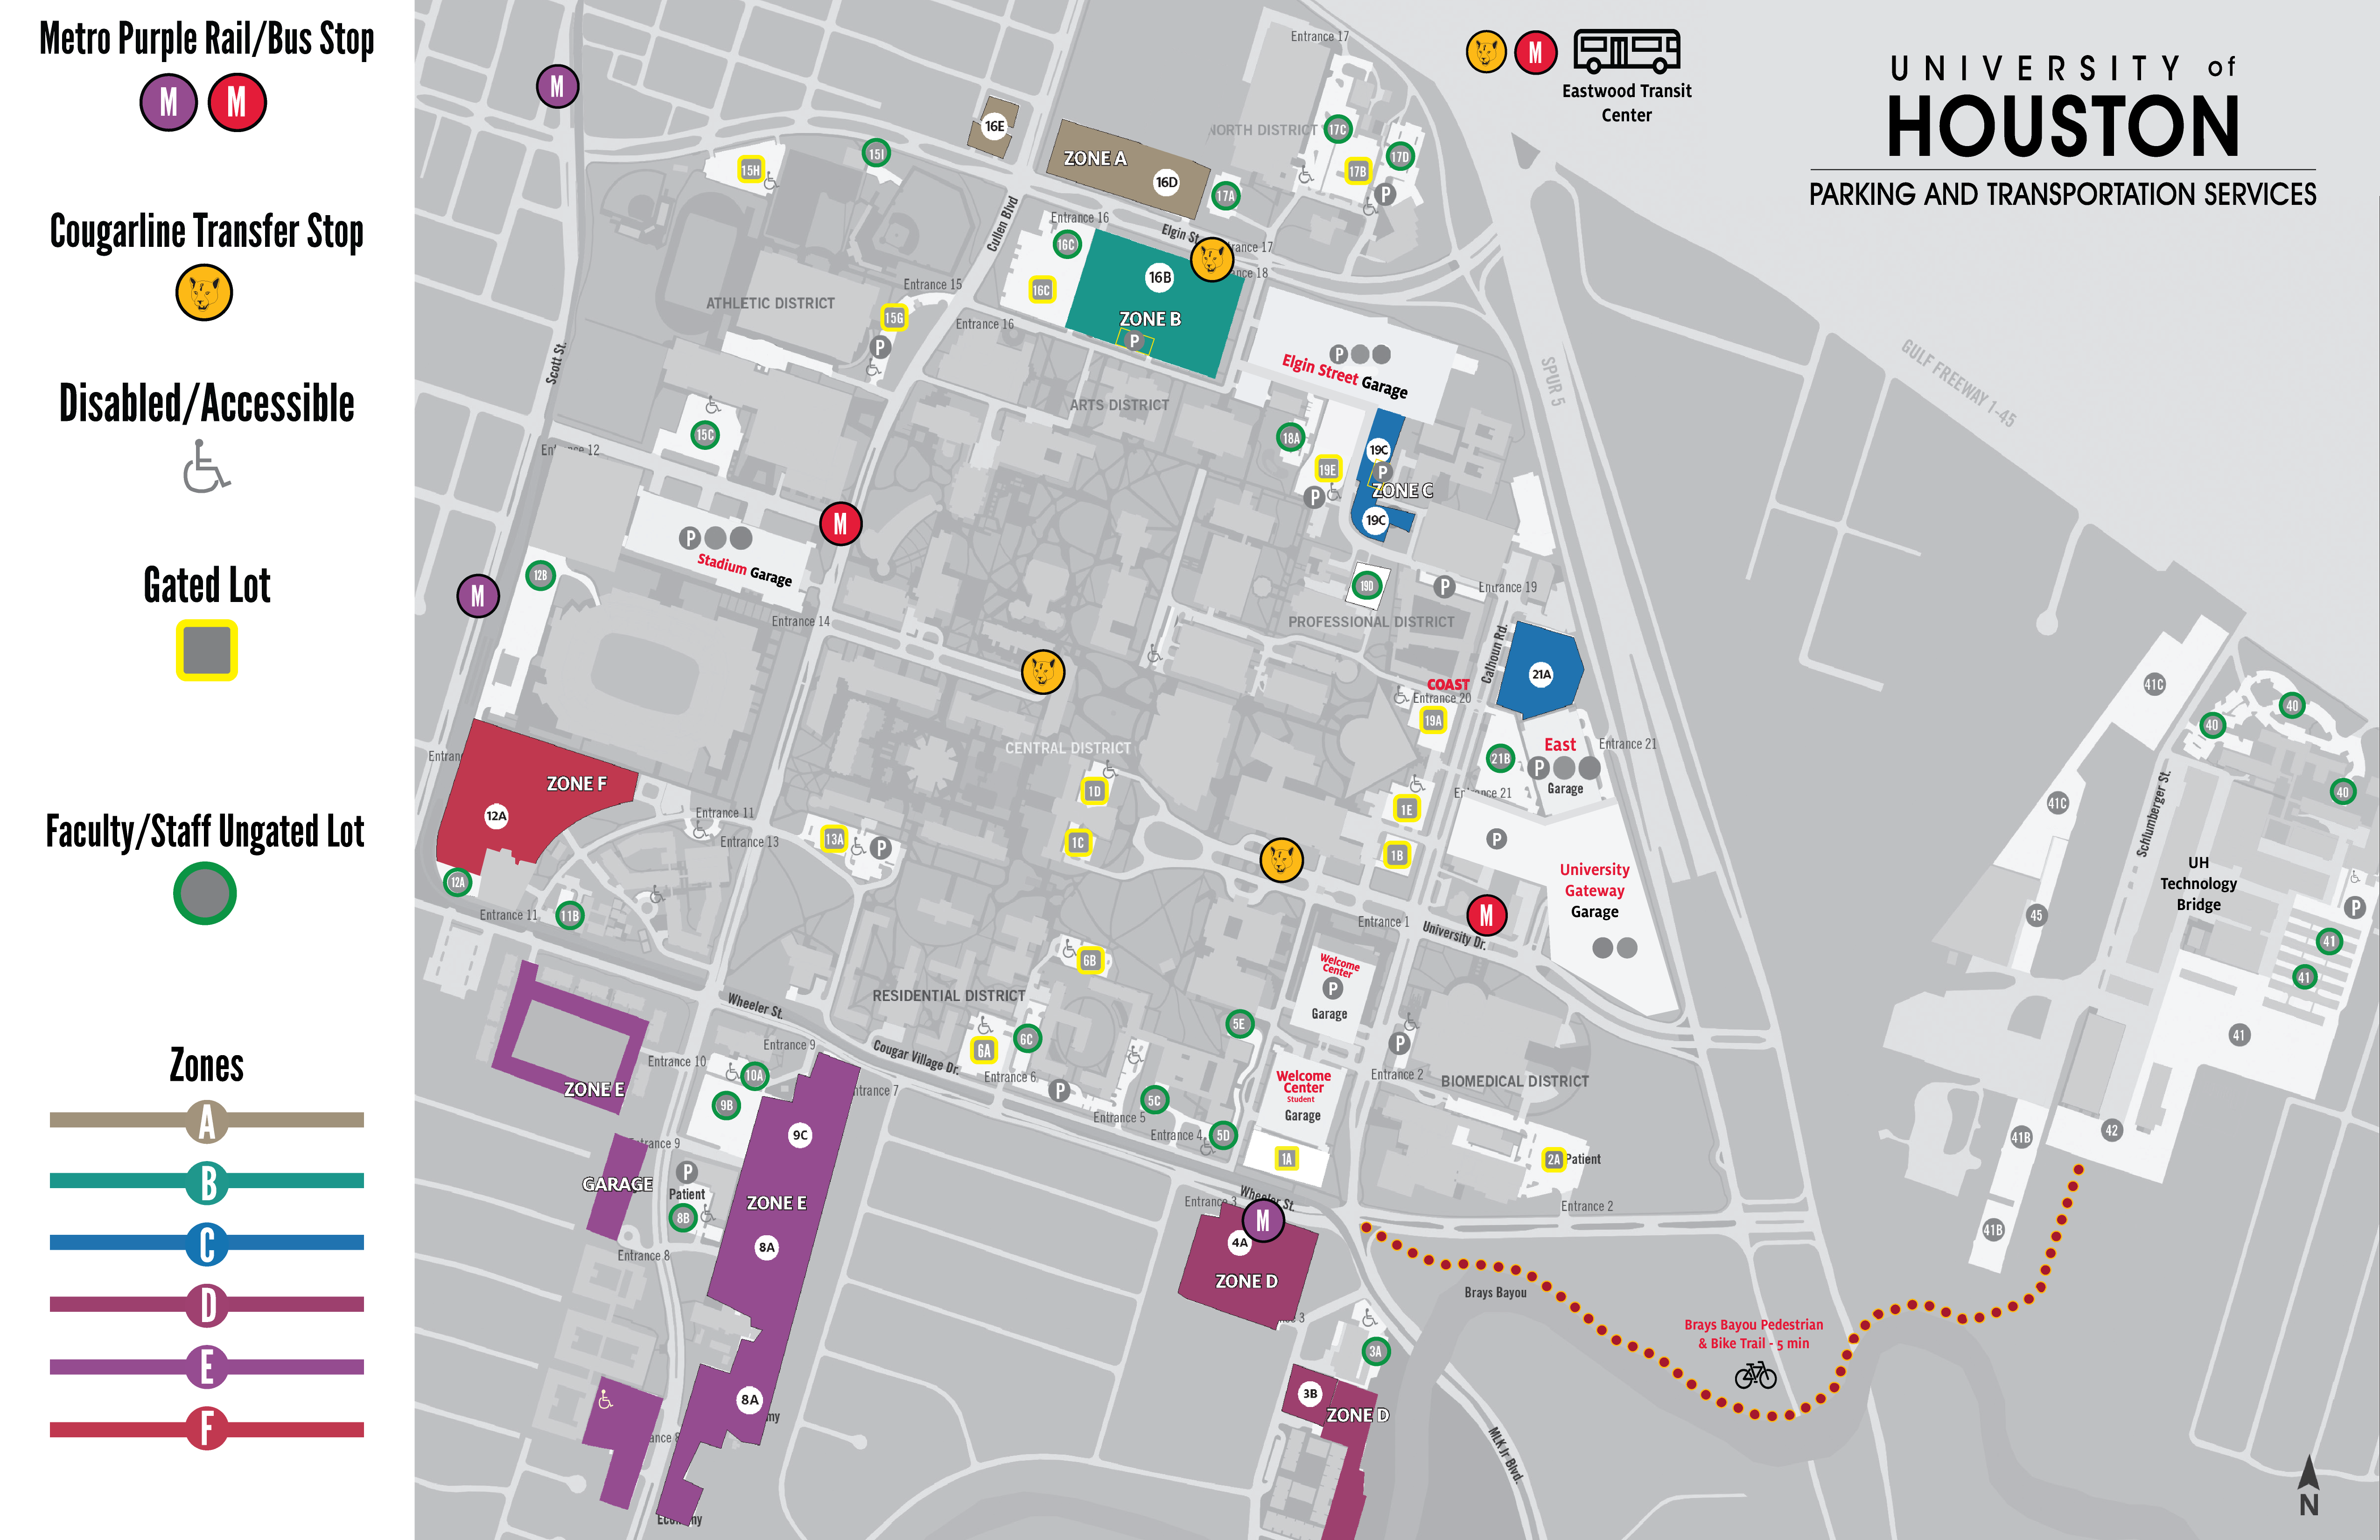 University Of Houston Parking Map Parking Maps   University of Houston University Of Houston Parking Map